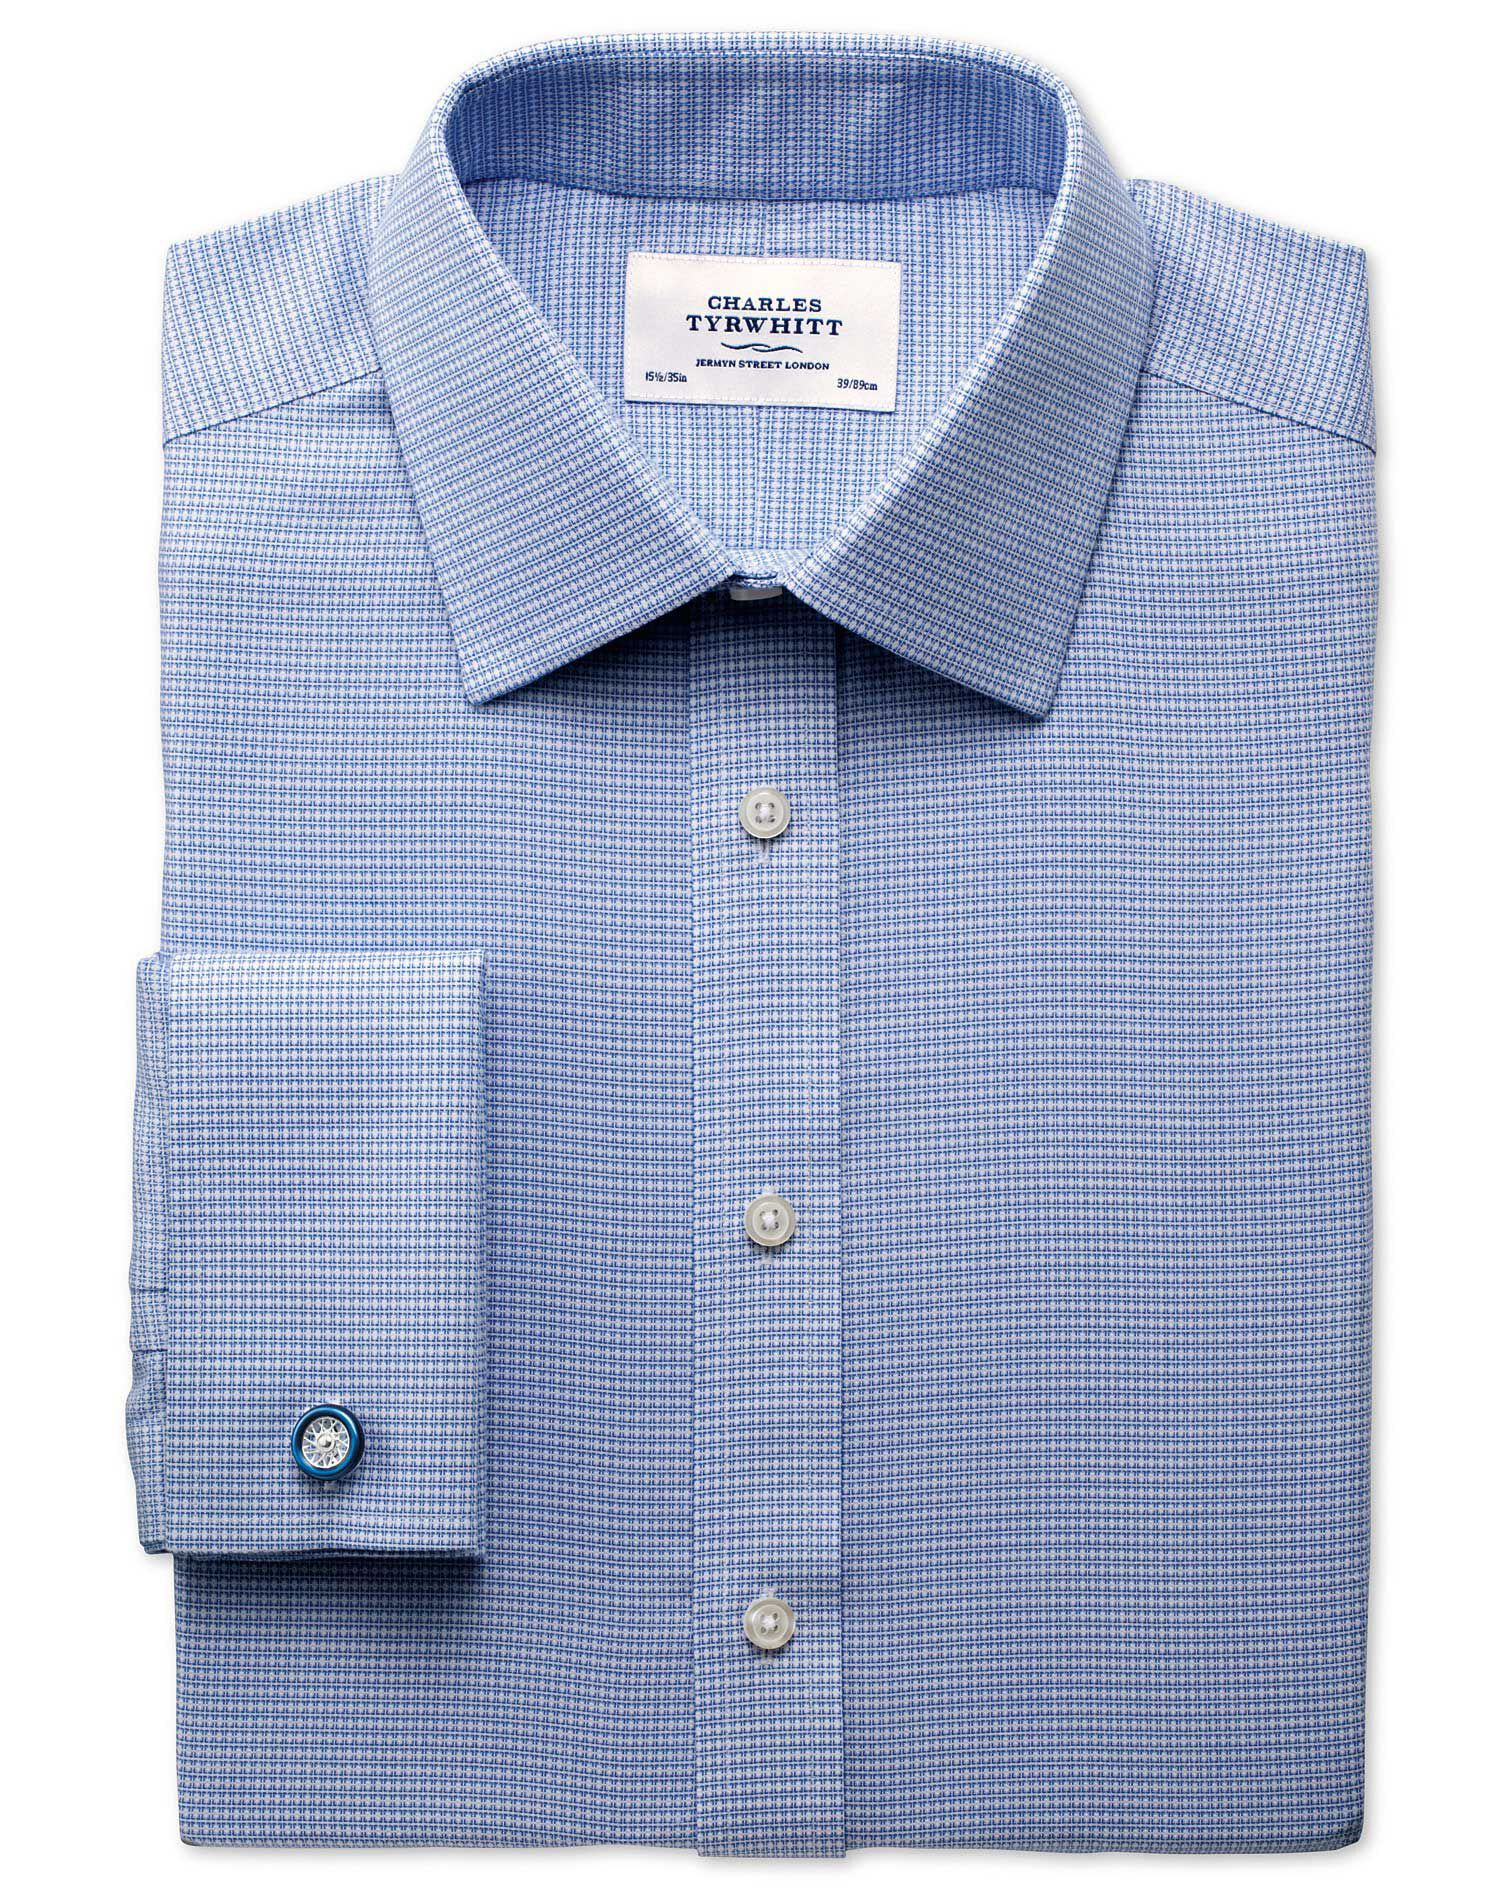 Classic Fit Non-Iron Square Textured Mid Blue Cotton Formal Shirt Single Cuff Size 15.5/37 by Charle